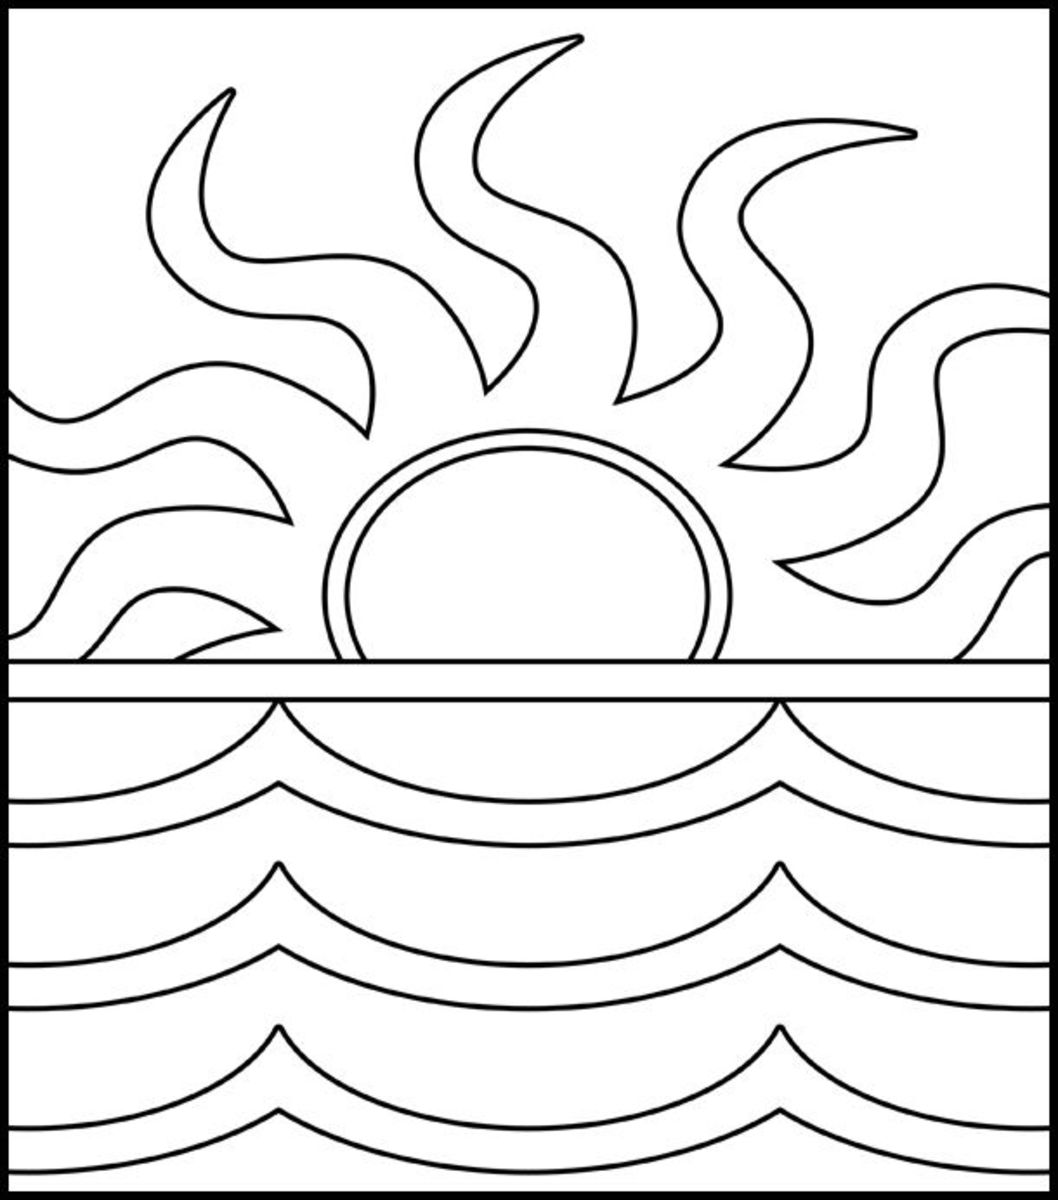 coloring sunset beach sunset coloring pages at getdrawings free download coloring sunset